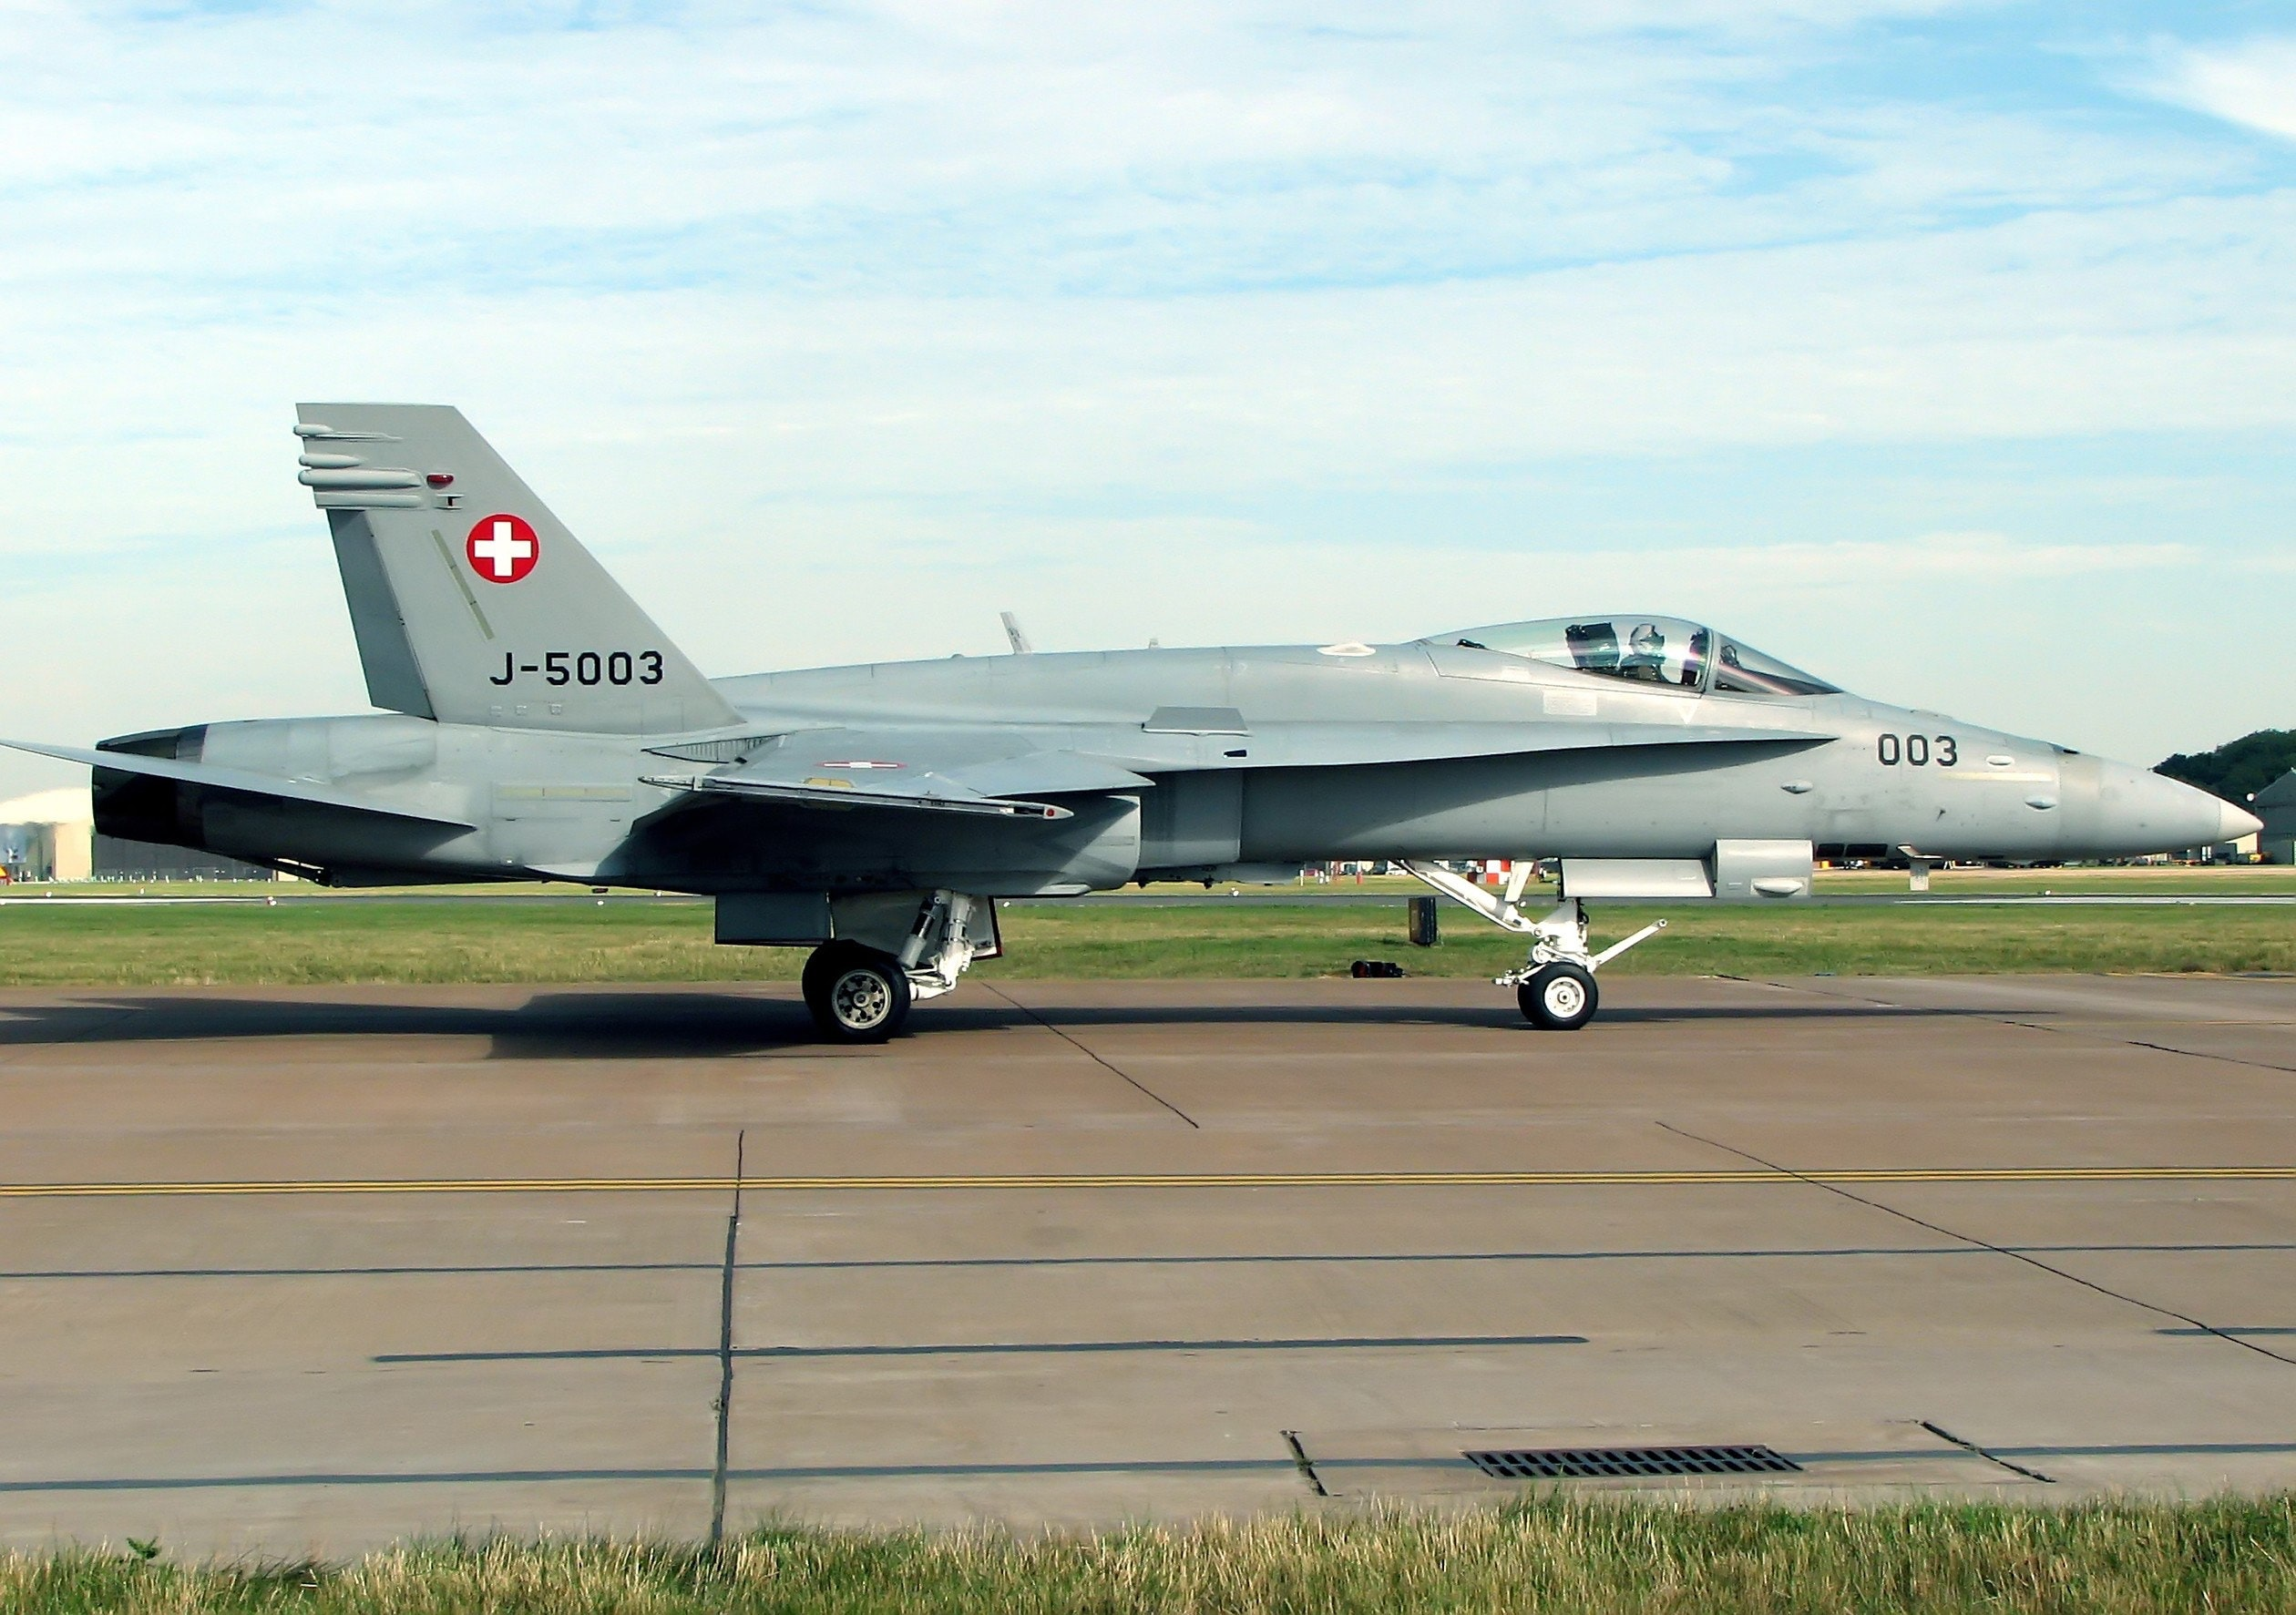 Swiss air force jet missing